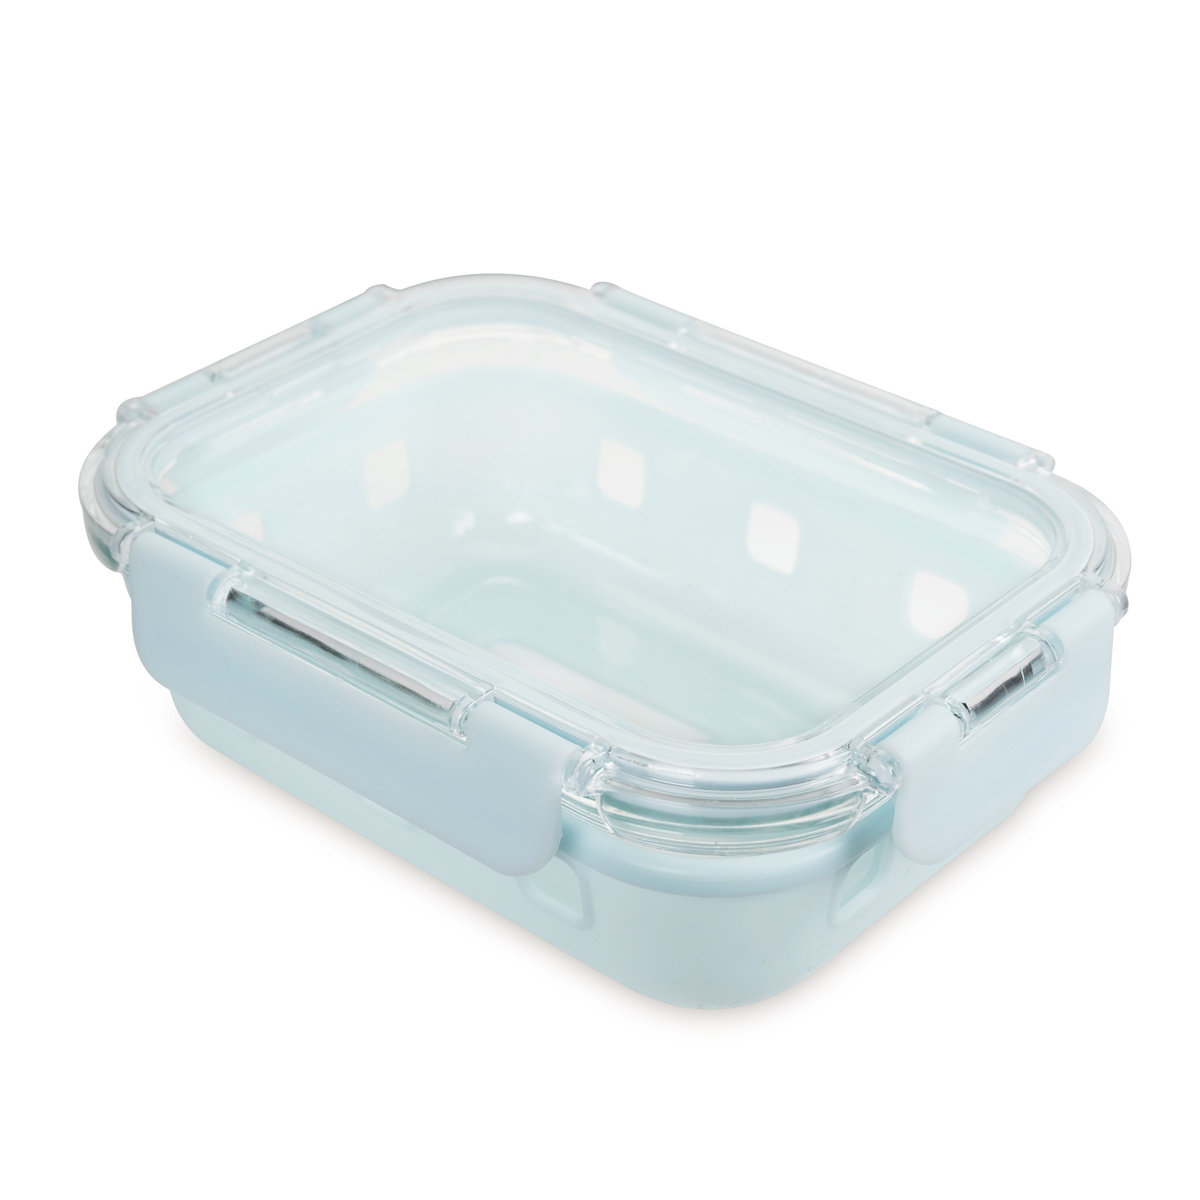 Glass food container with silicone sleeve - FC1G640SS